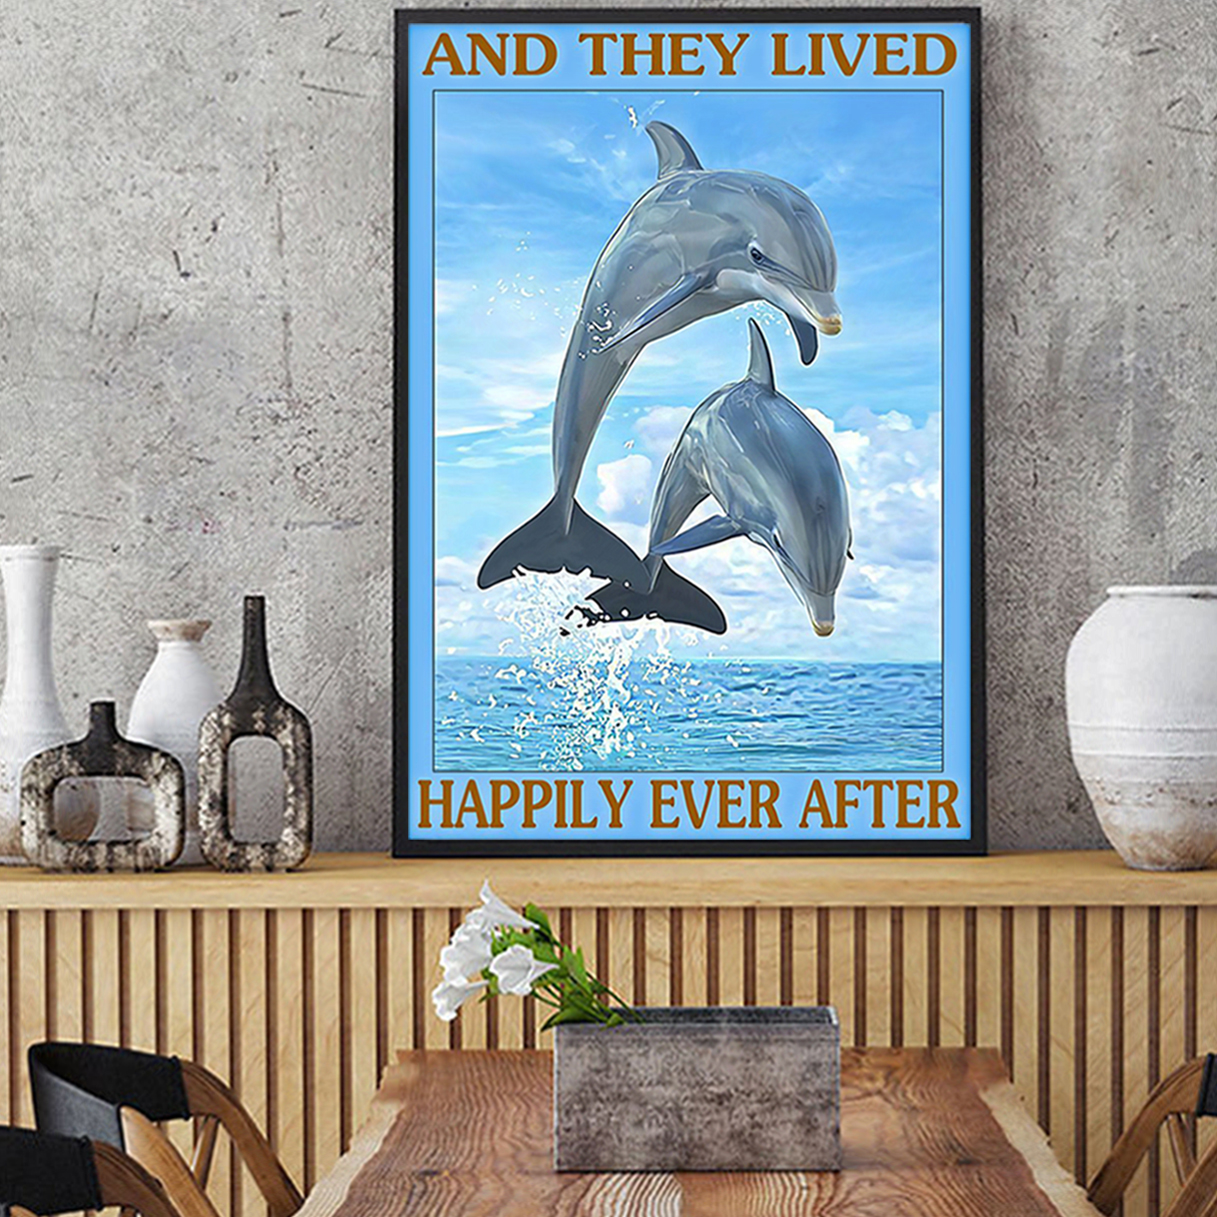 Dolphin and they lived happily ever after poster A1